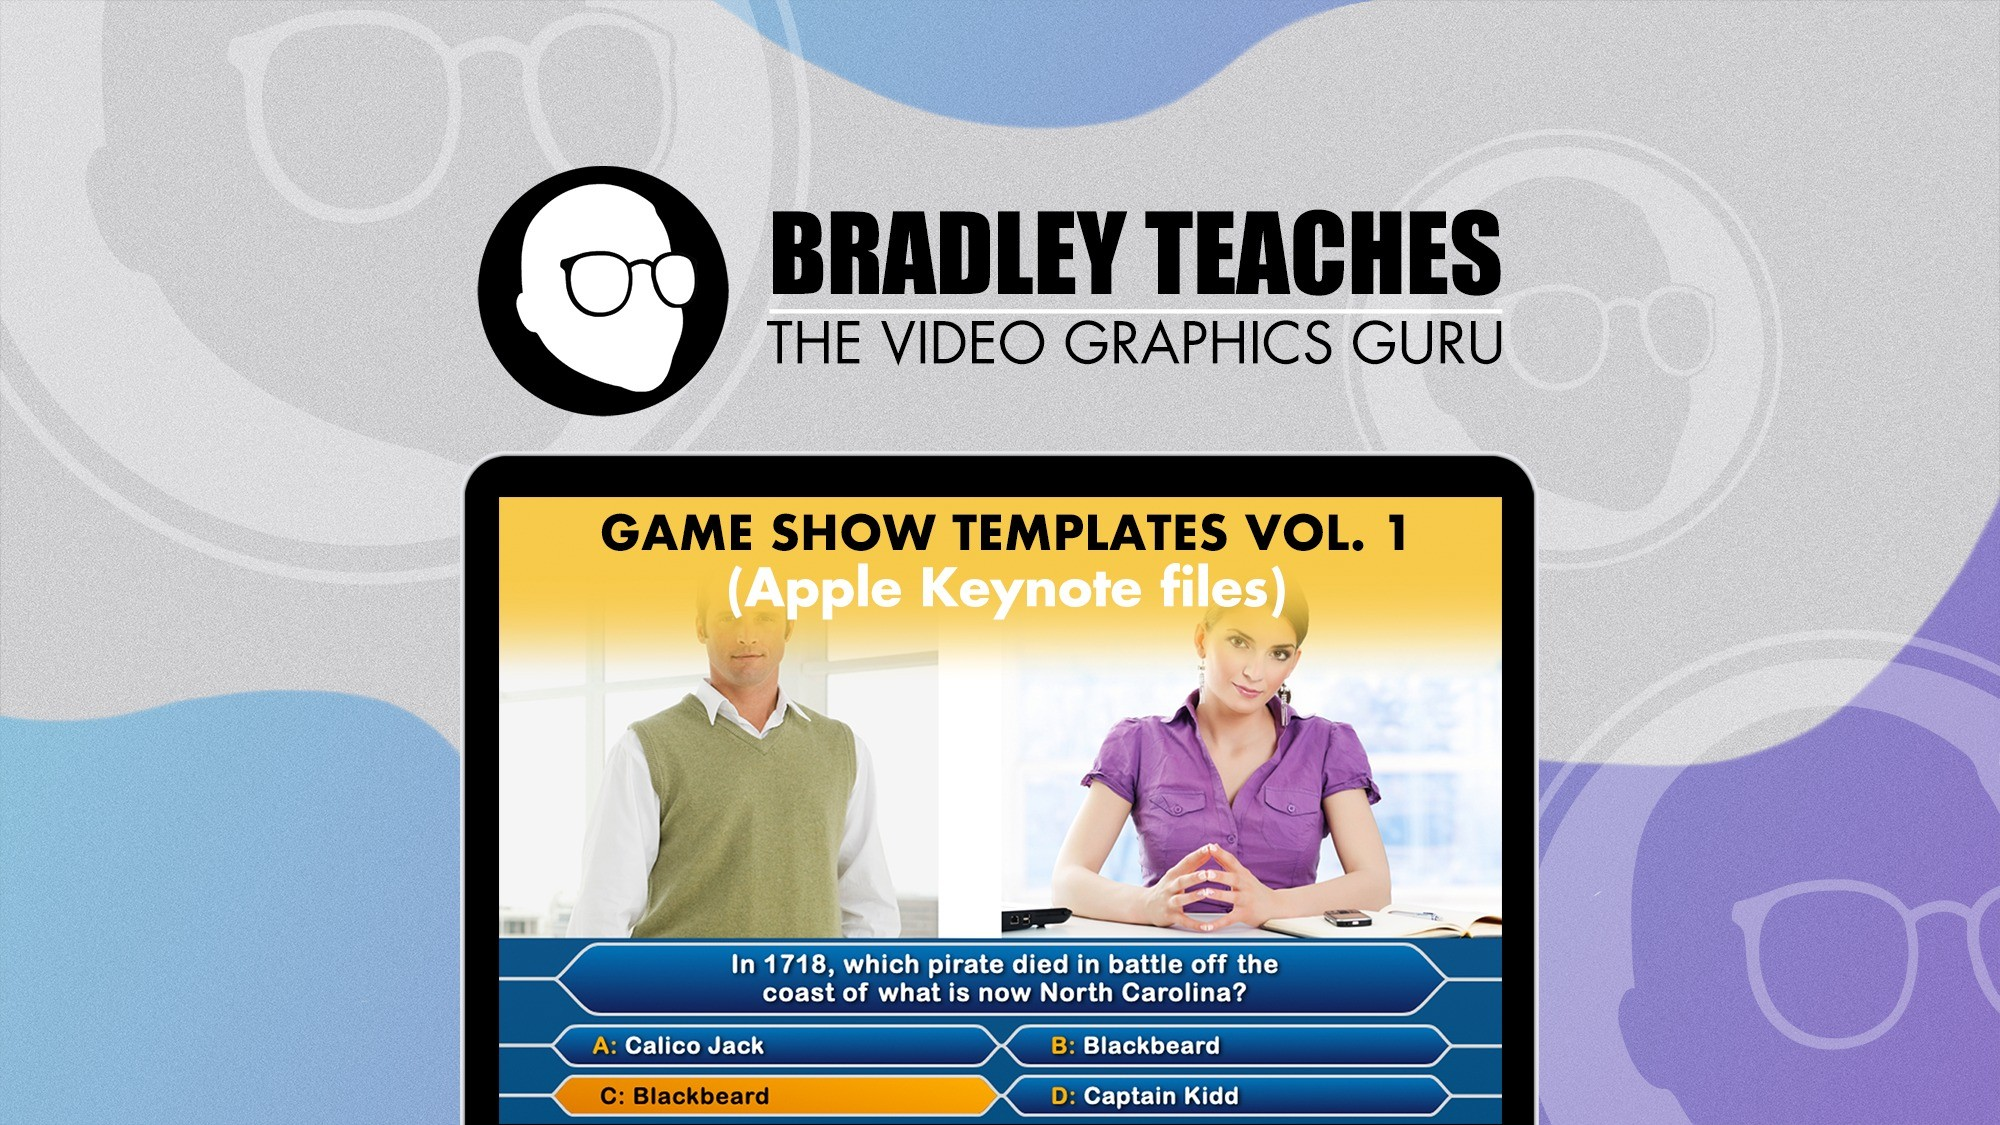 AppSumo Deal for Games Show Templates Vol. 1